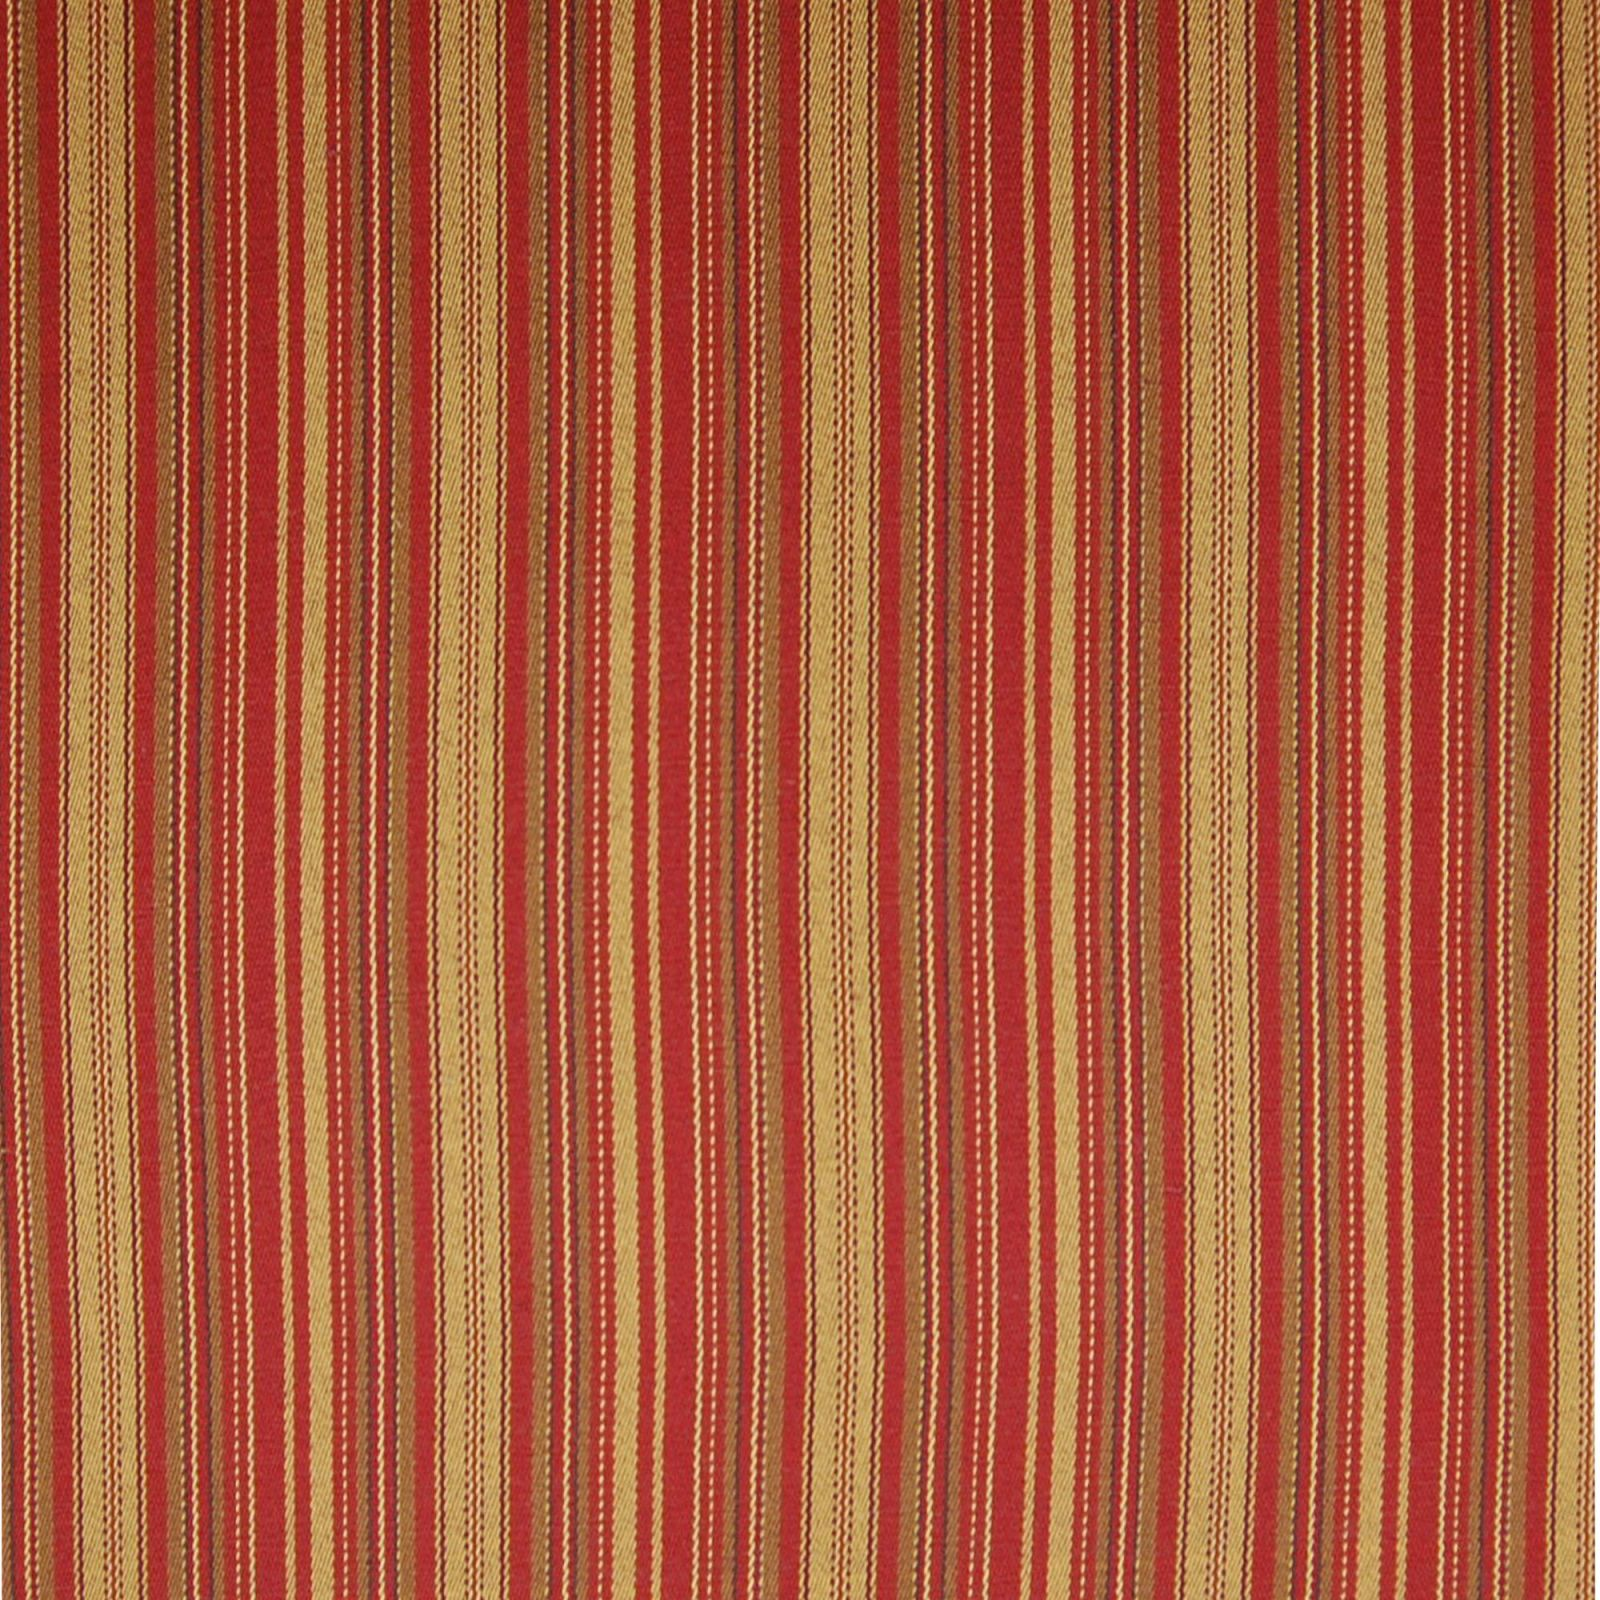 Merlot Red And Beige Stripe Woven Upholstery Fabric